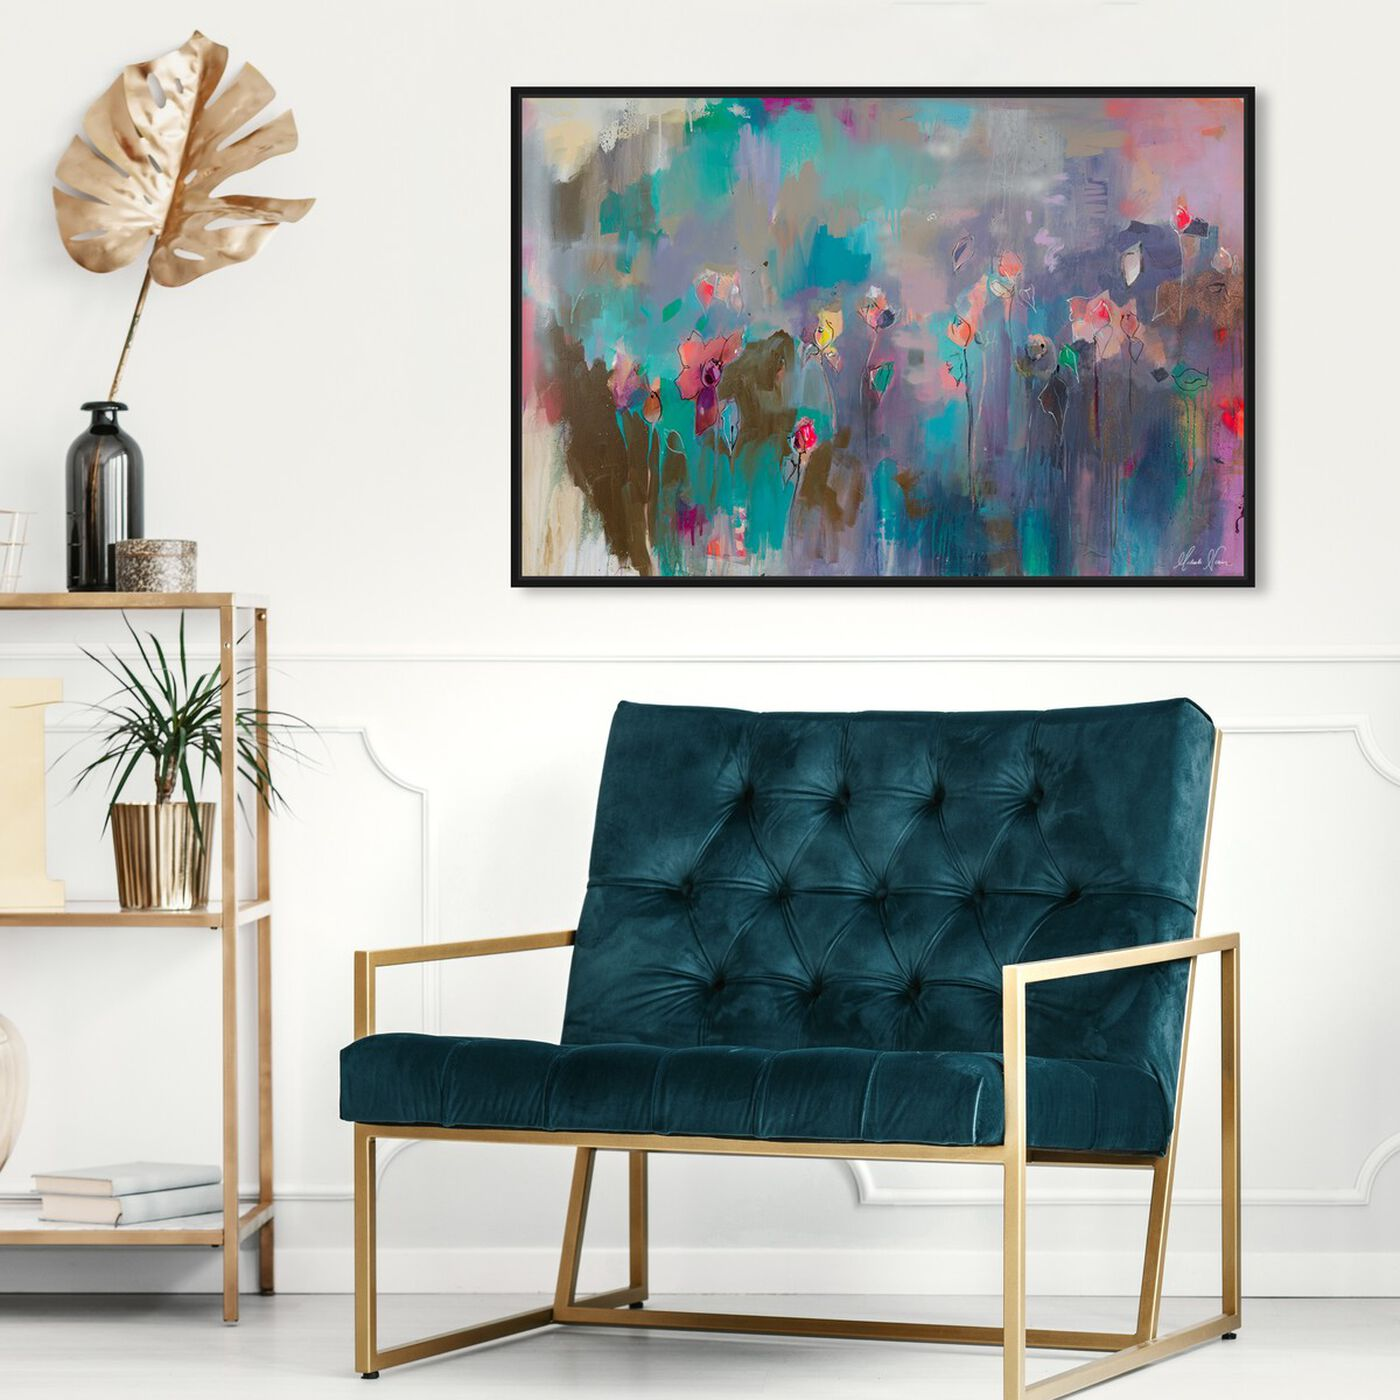 Hanging view of Truth is My Identity by Michaela Nessim featuring abstract and paint art.